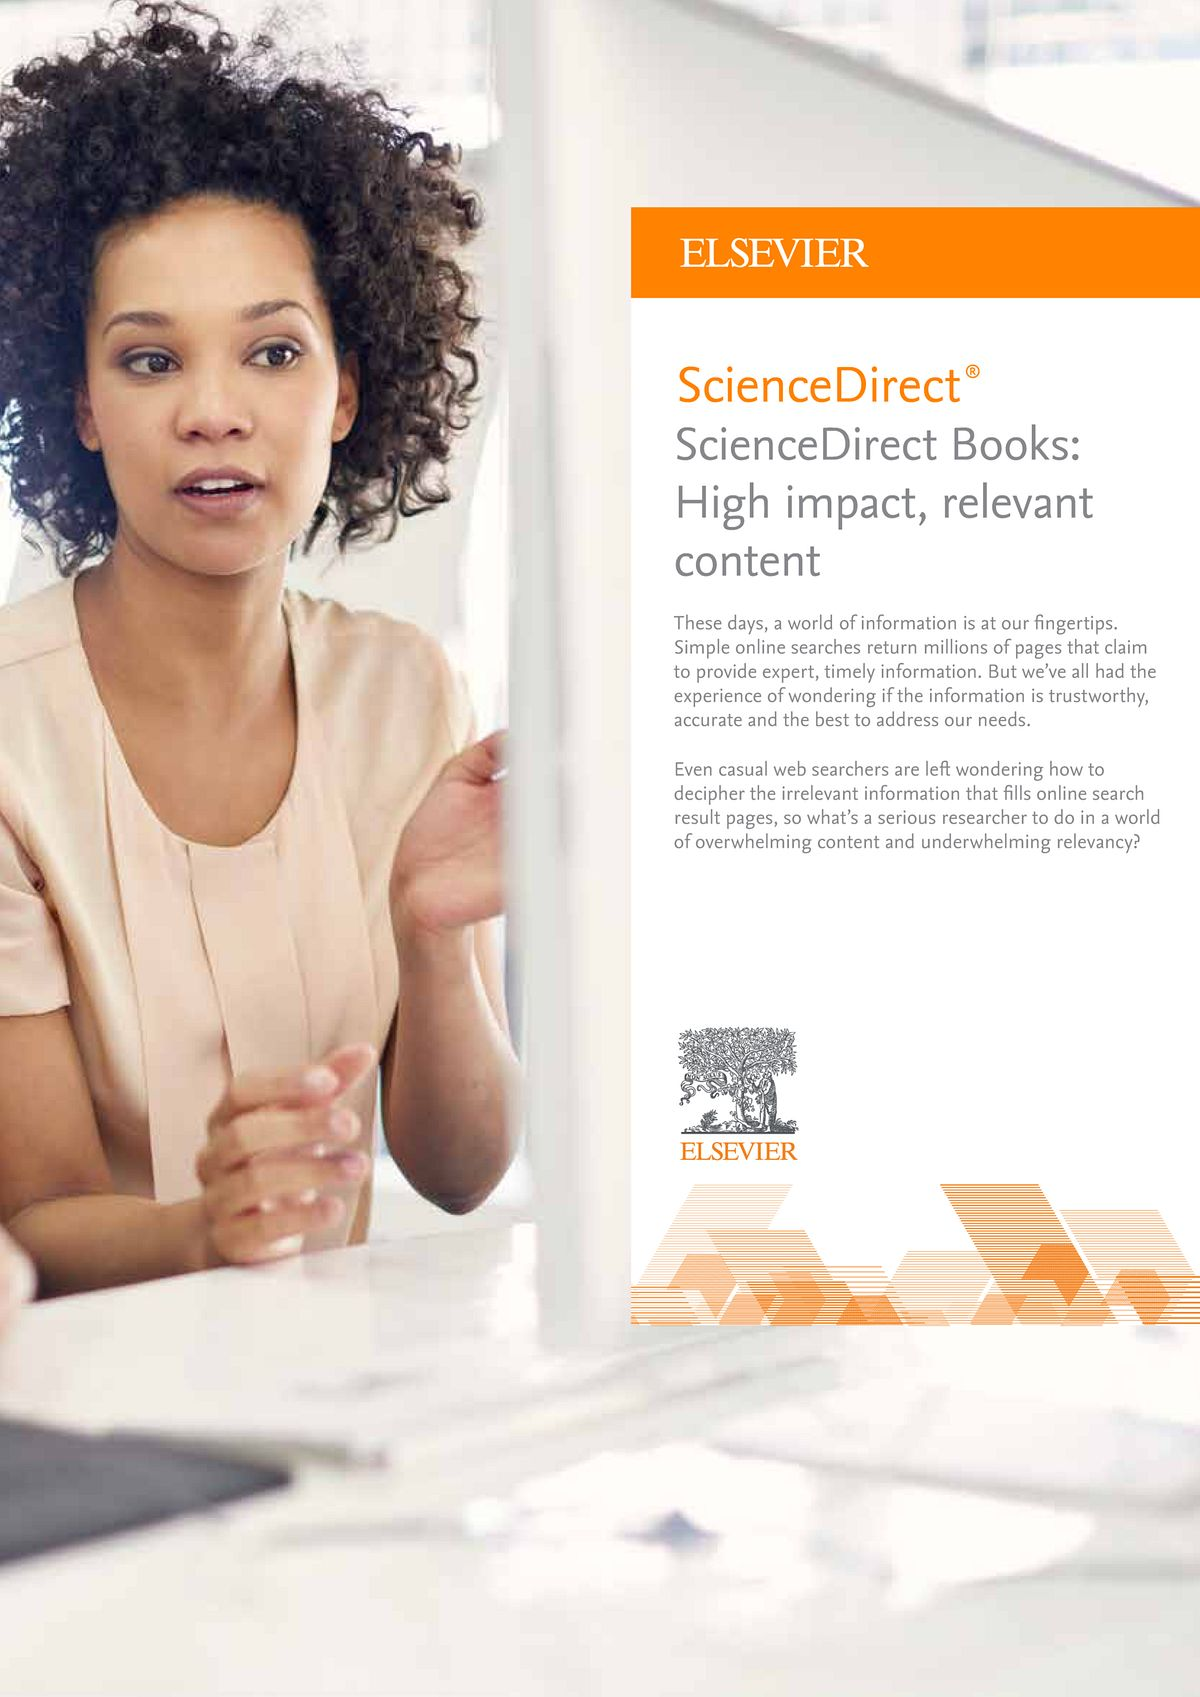 Thumbnail for ScienceDirect Books brochure